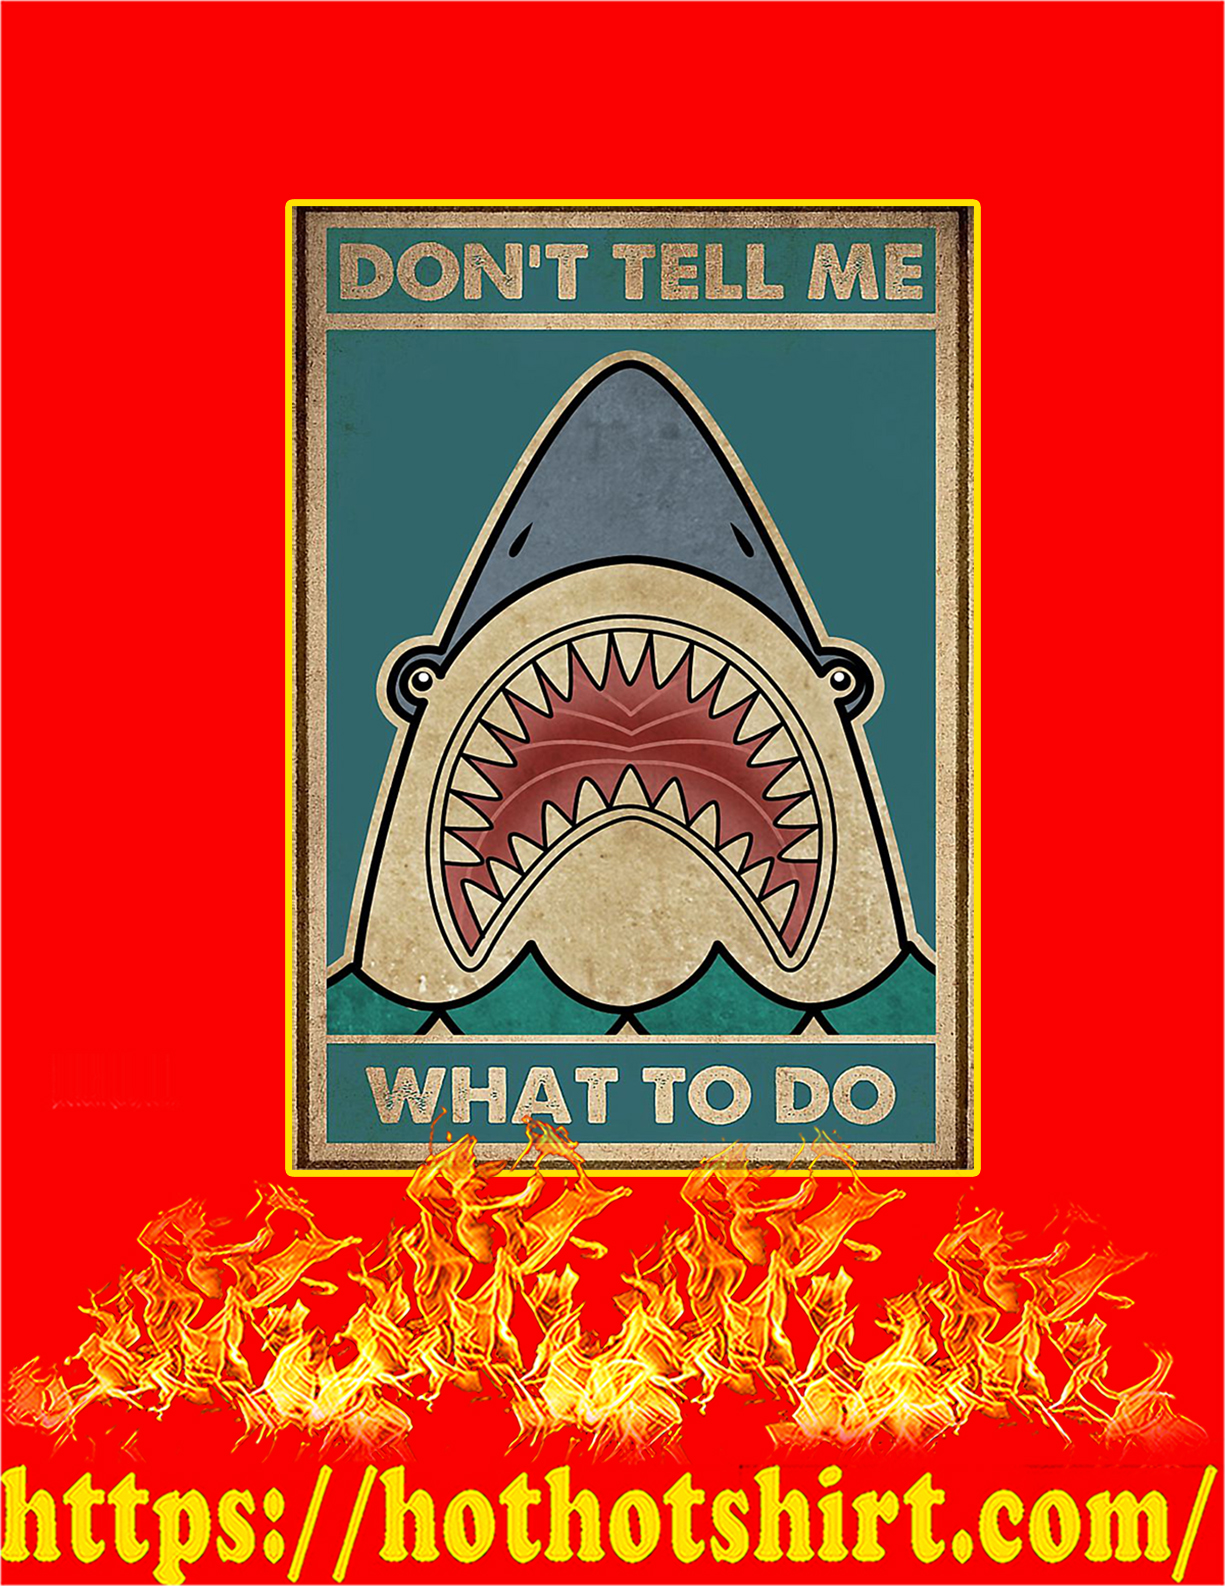 Shark Don't tell me what to do poster - A4